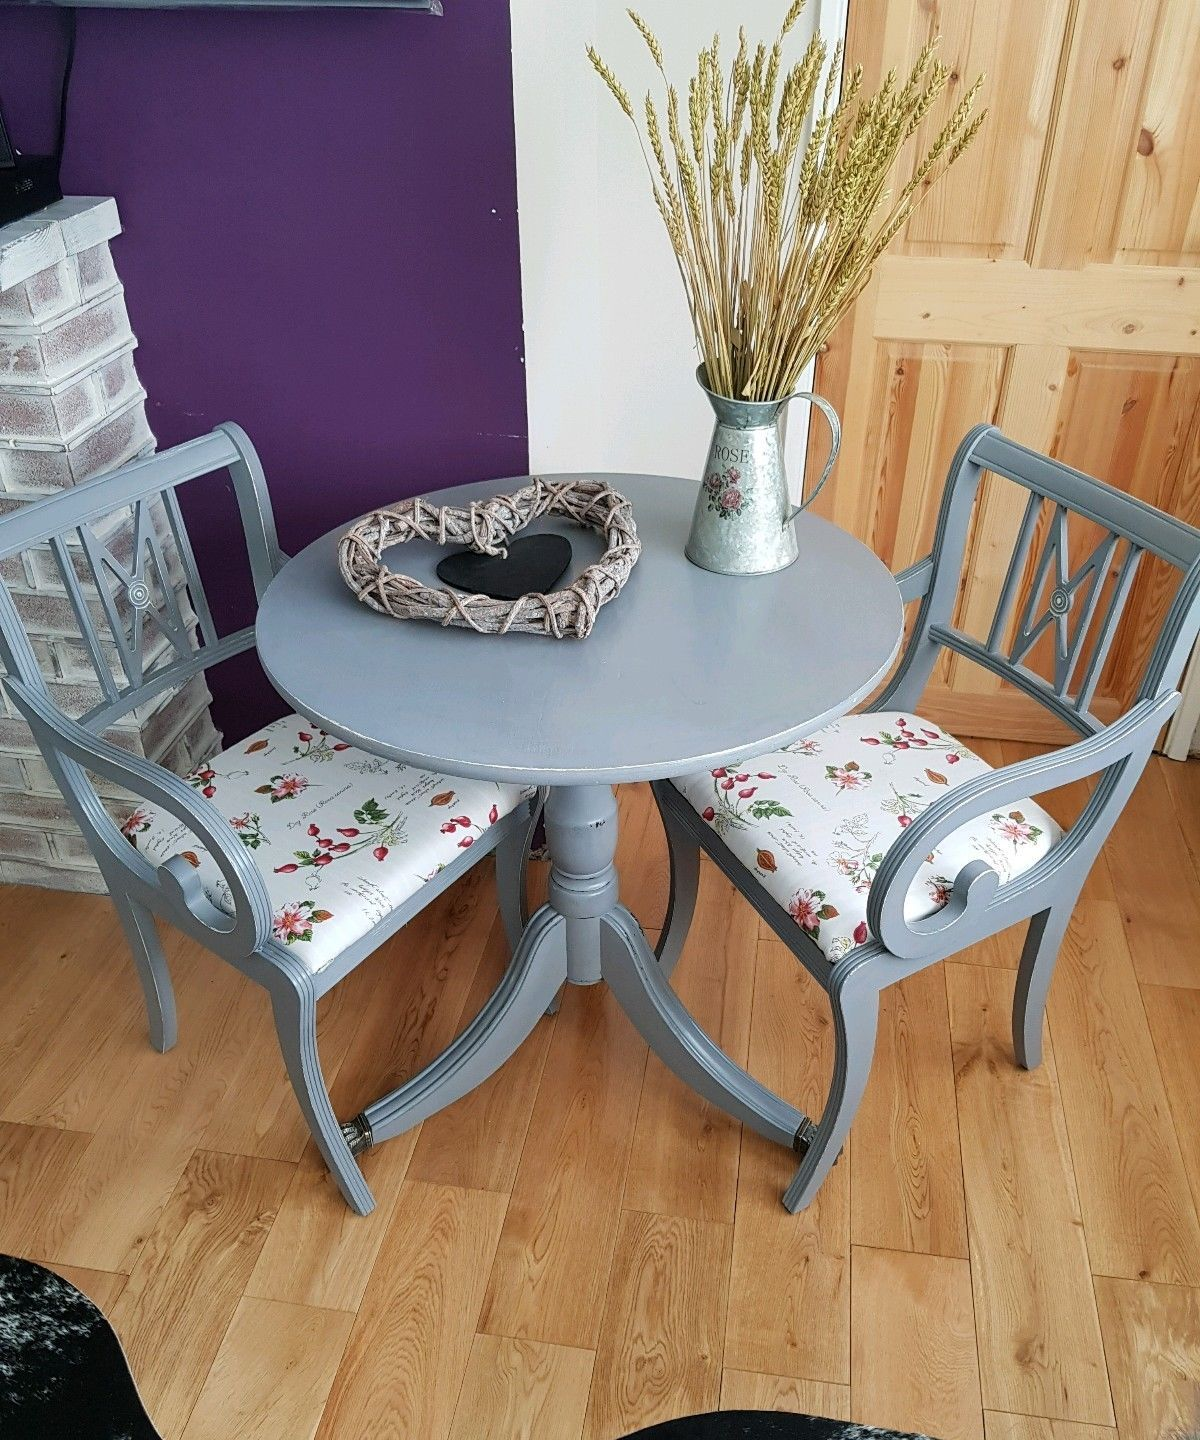 Shabby Chic Dinning Table With Two Chairs Ebay Upcycled